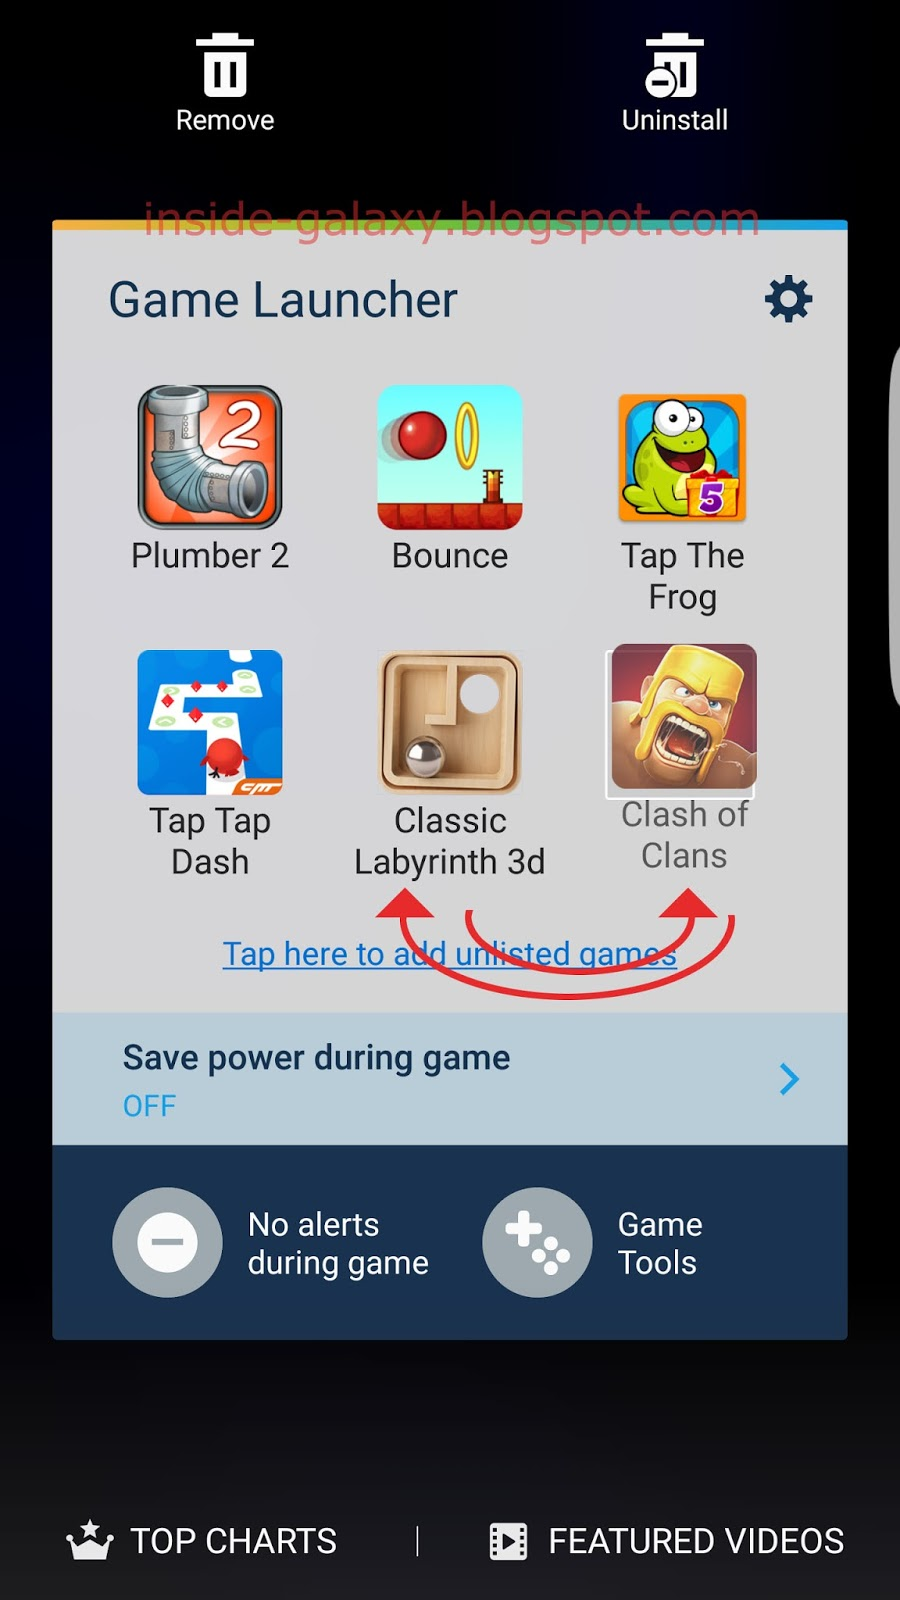 Samsung Galaxy S7 Edge: How to Use Game Launcher Feature in